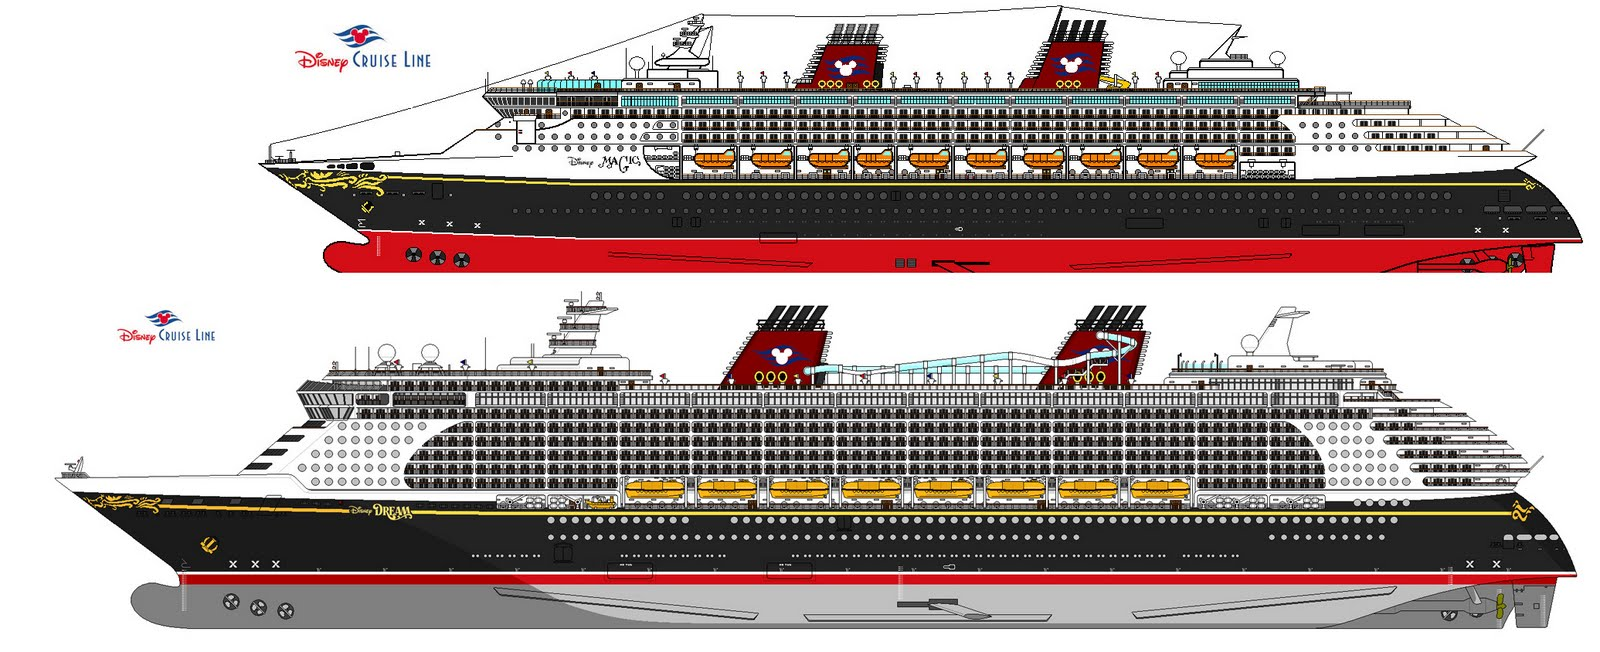 1600x652 Mouse Guide Identifying Disney Cruise Ships Size Of Regal Princess